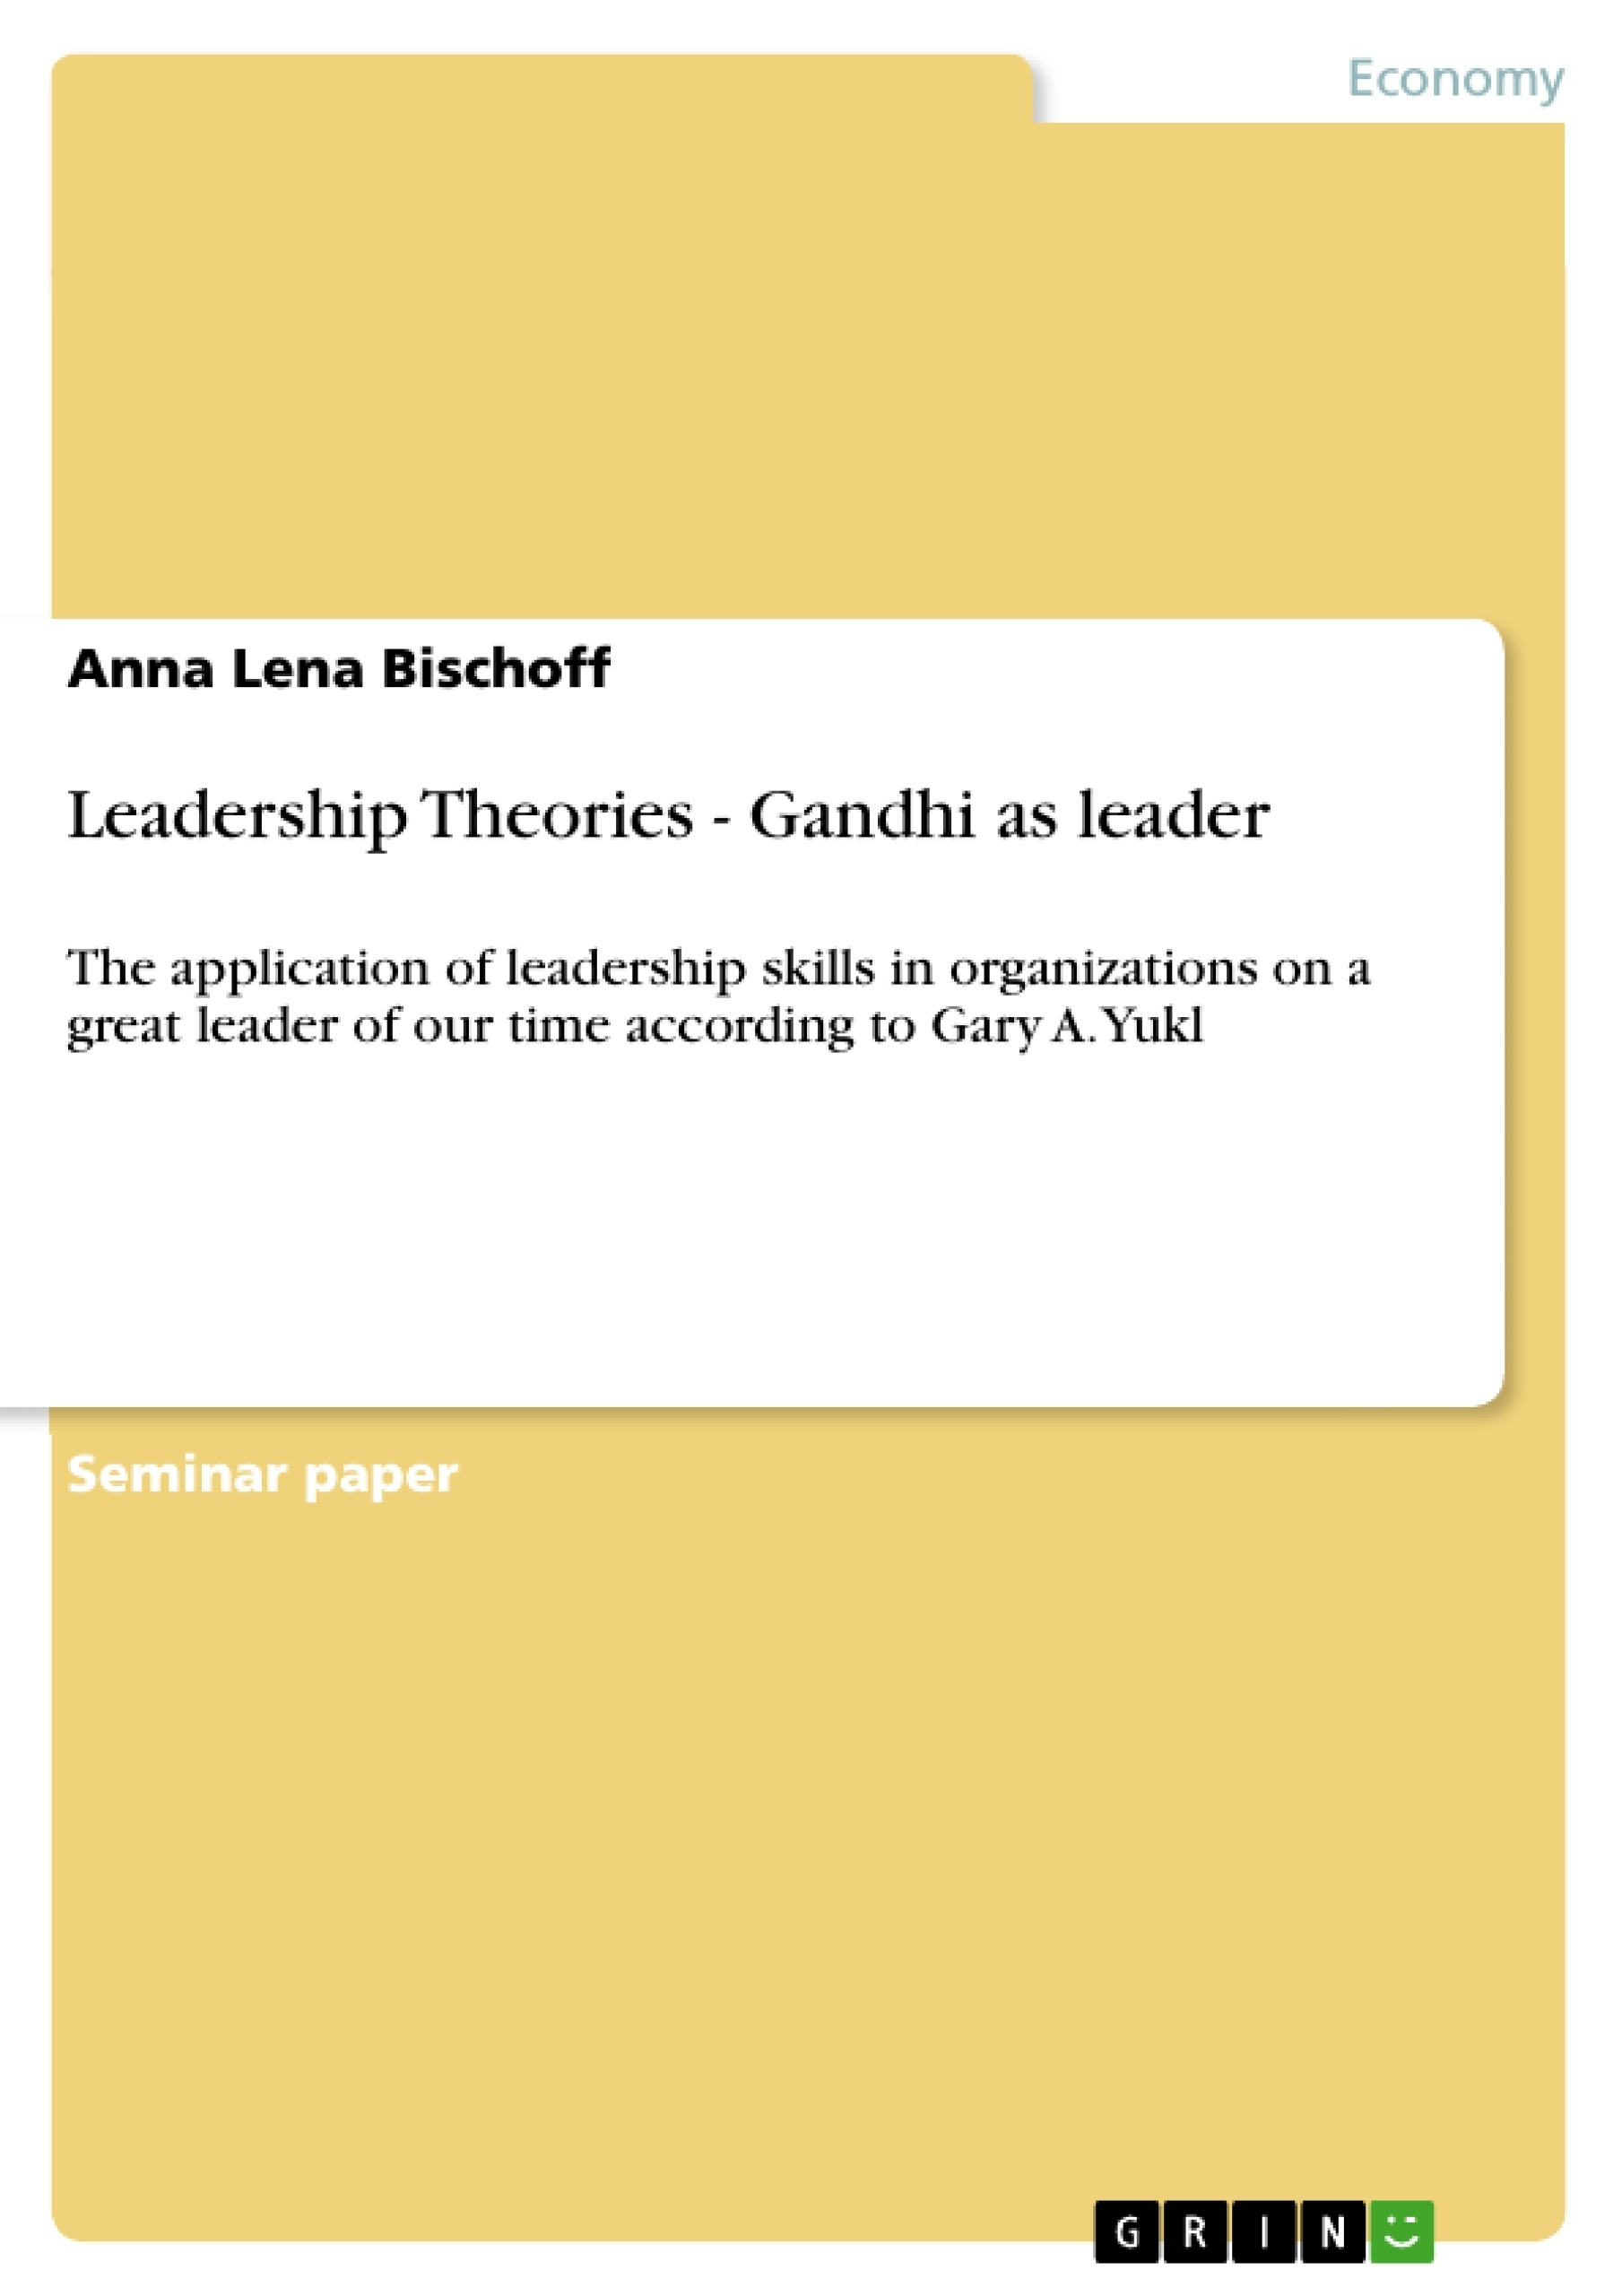 essay on a leader leadership theories gandhi as leader publish  leadership theories gandhi as leader publish your master s leadership theories gandhi as leader publish your servant leadership essay